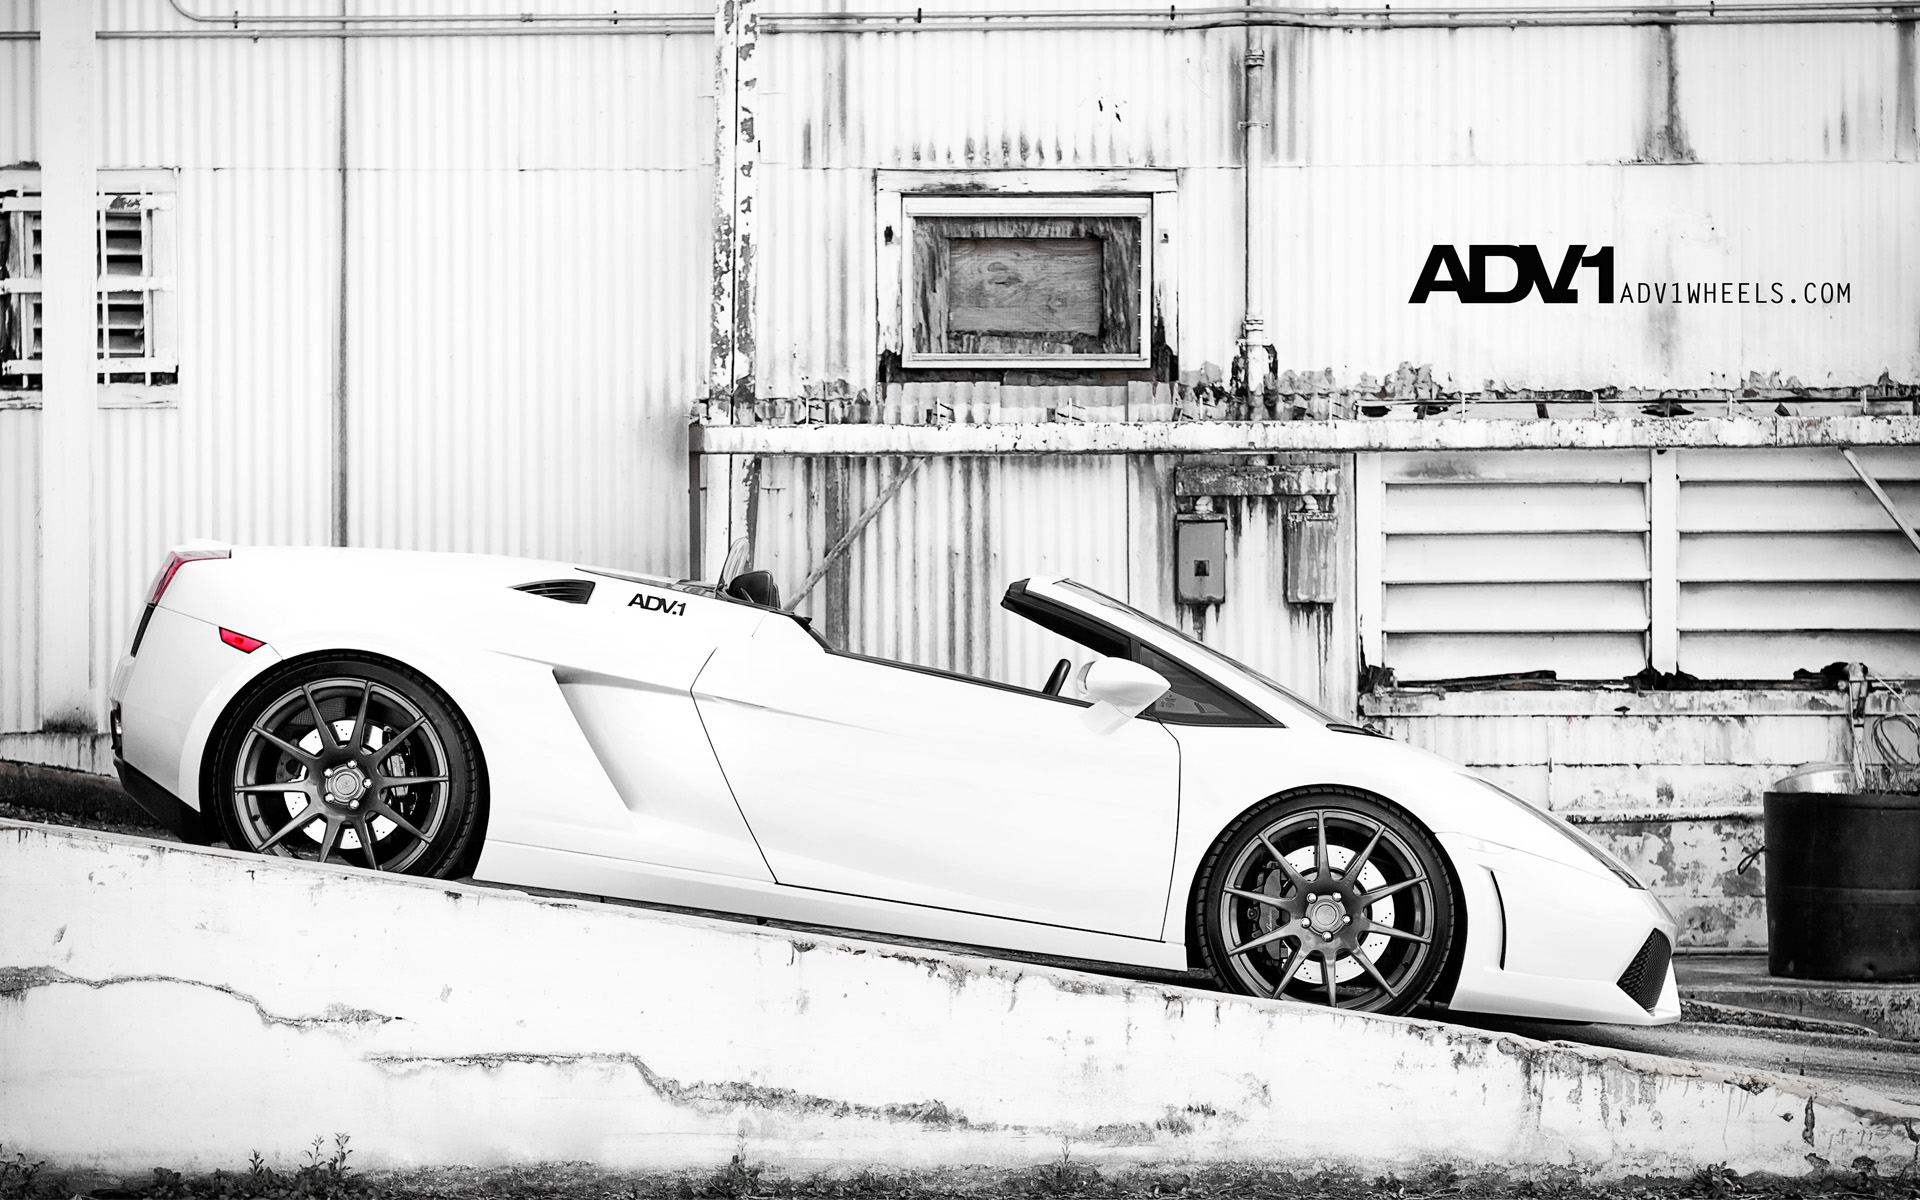 Lamborghini Gallardo Wallpaper Windows Download